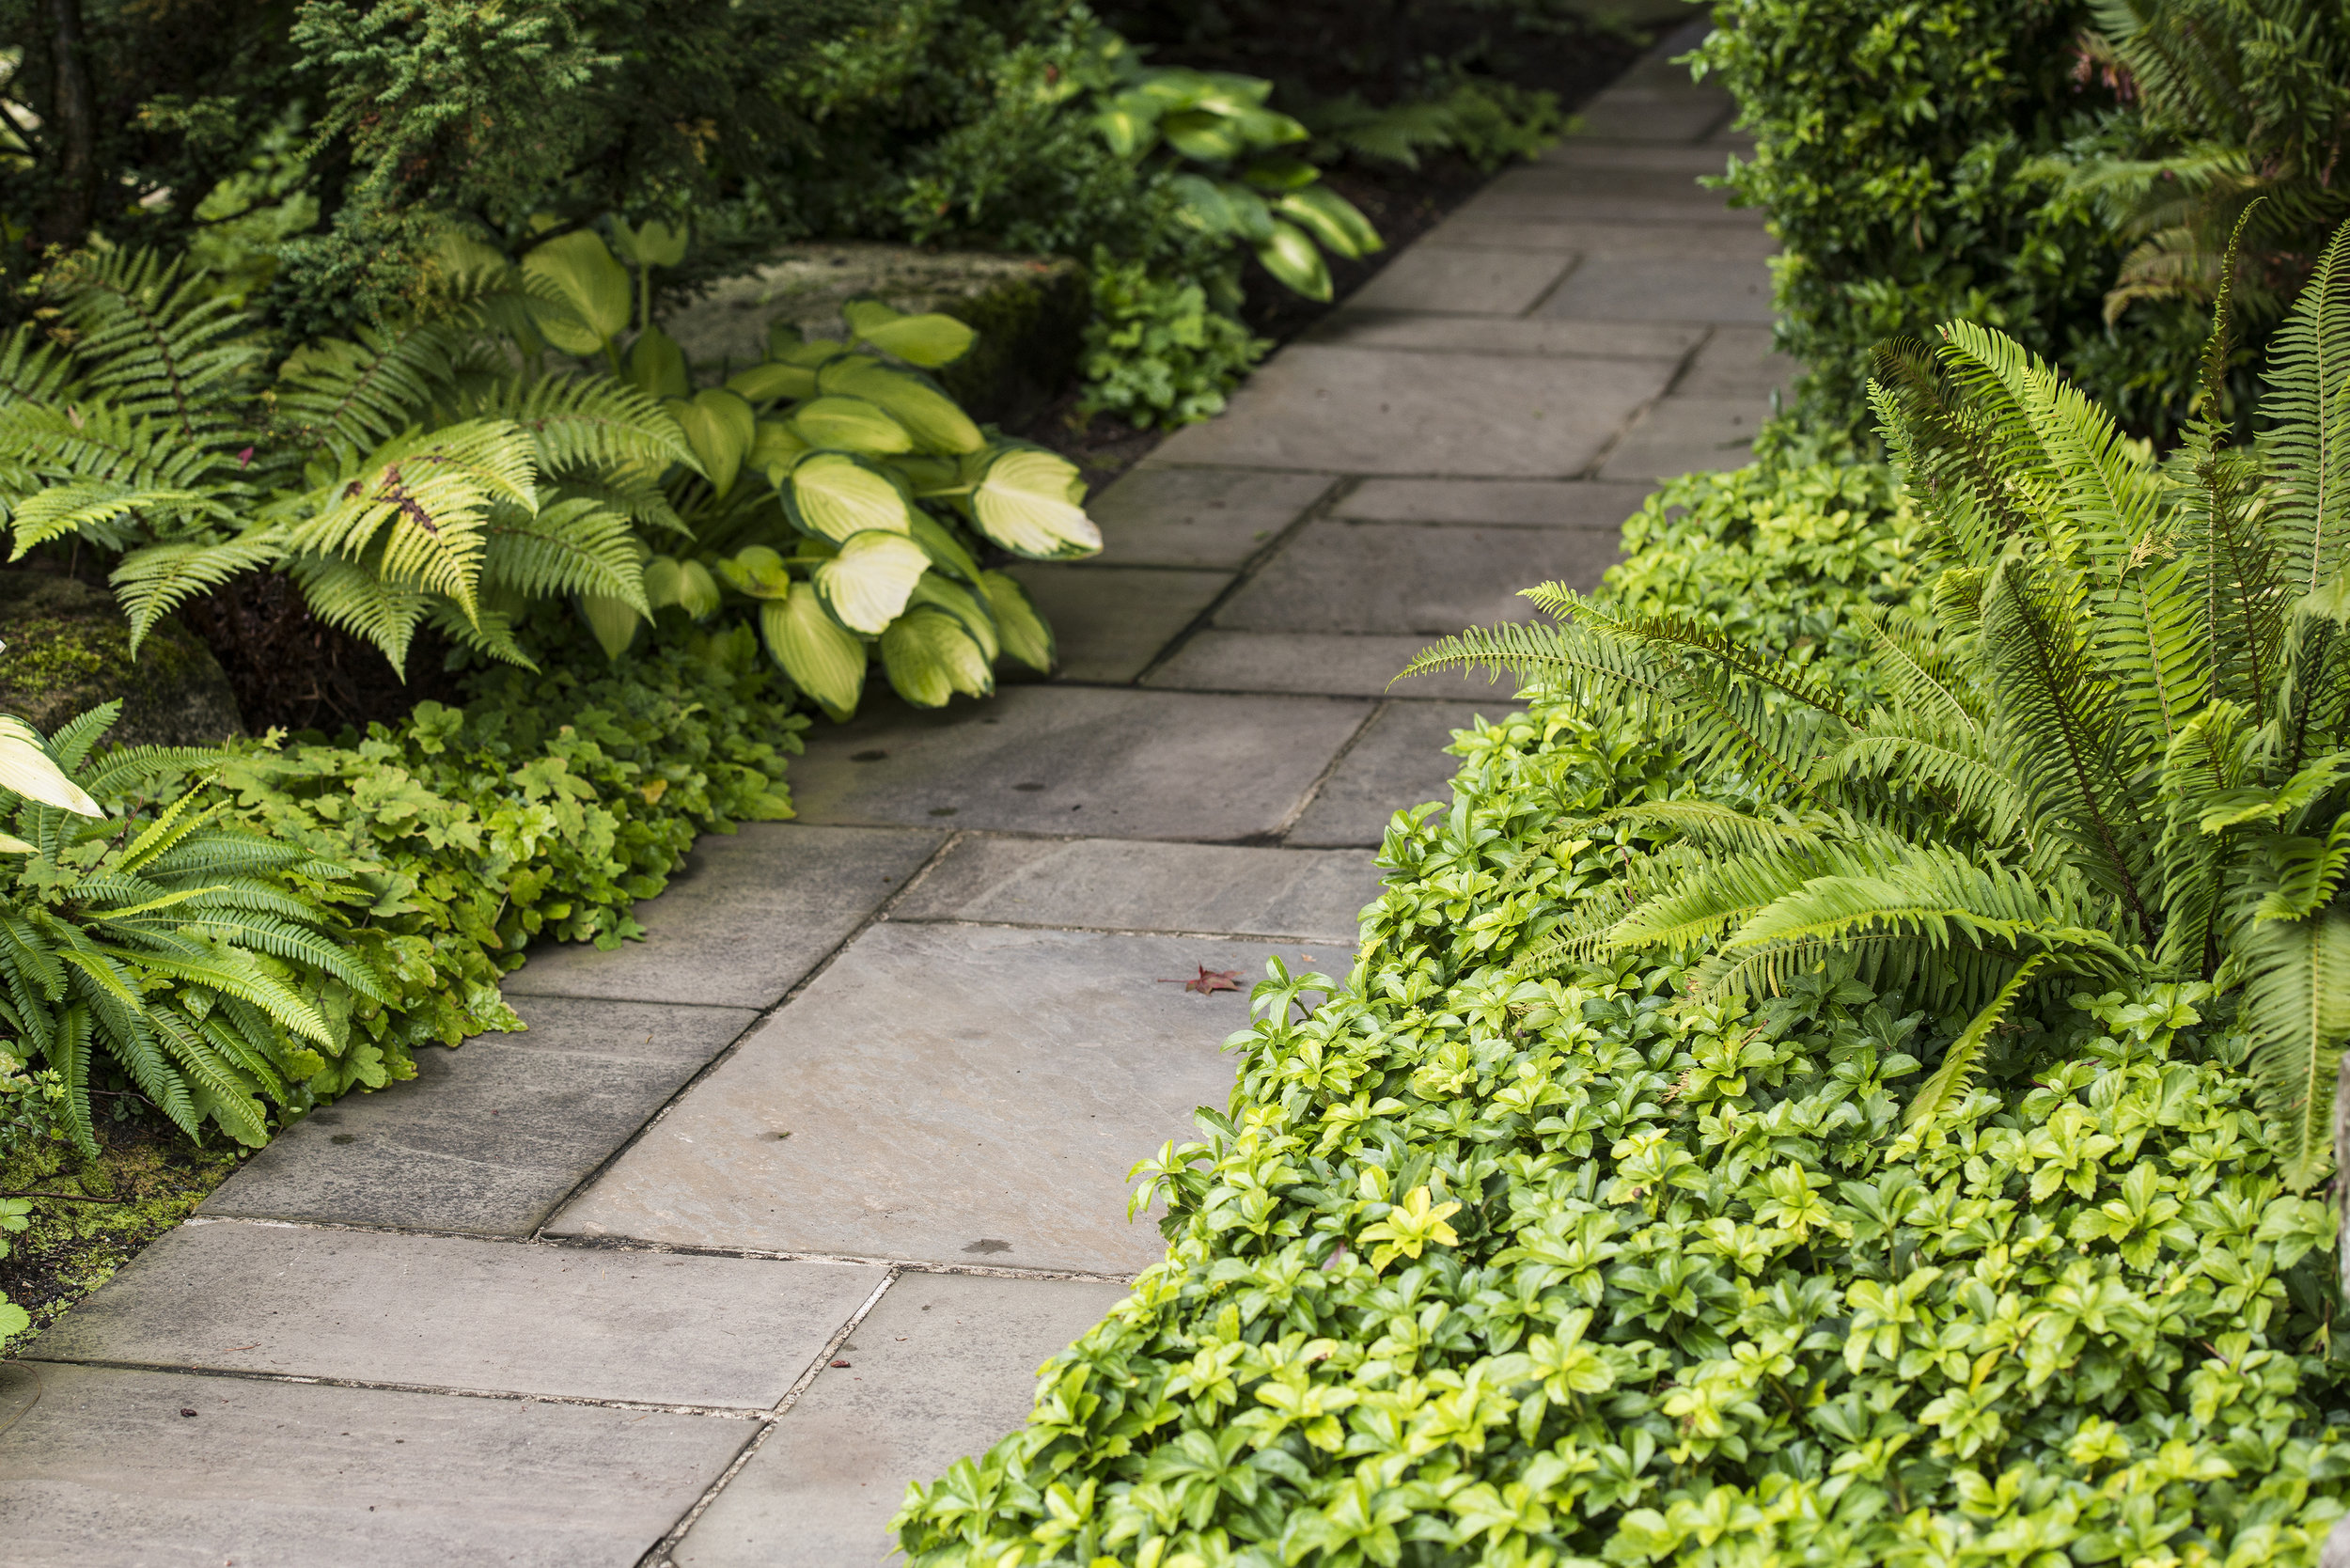 Planting along garden path with shade loving plants